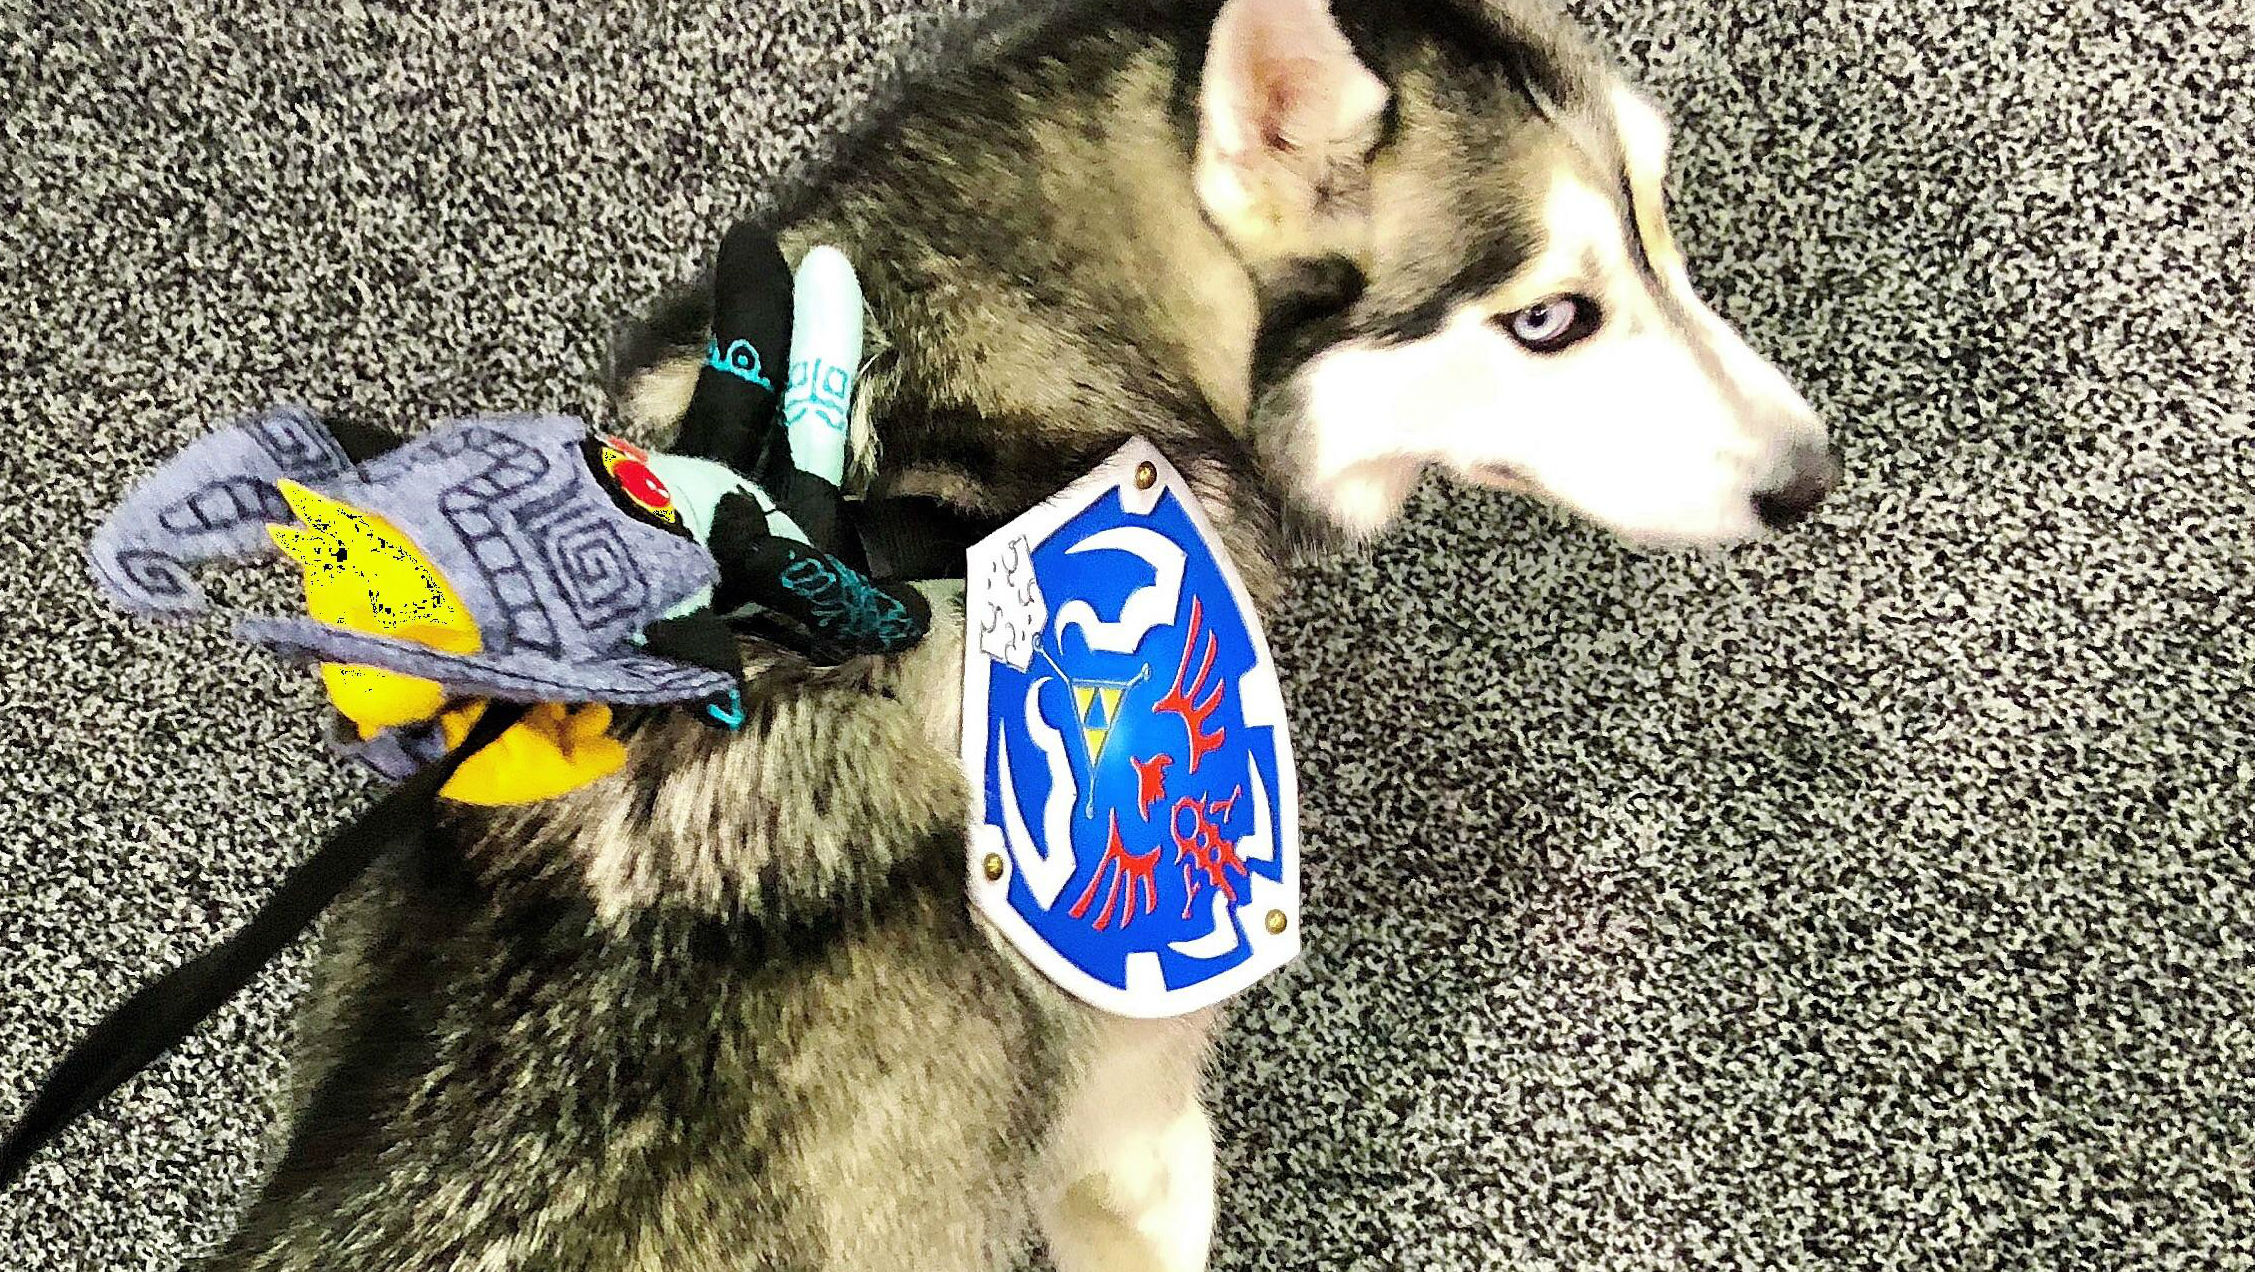 And now an adorable Wolf Link cosplay from a very good dog screenshot